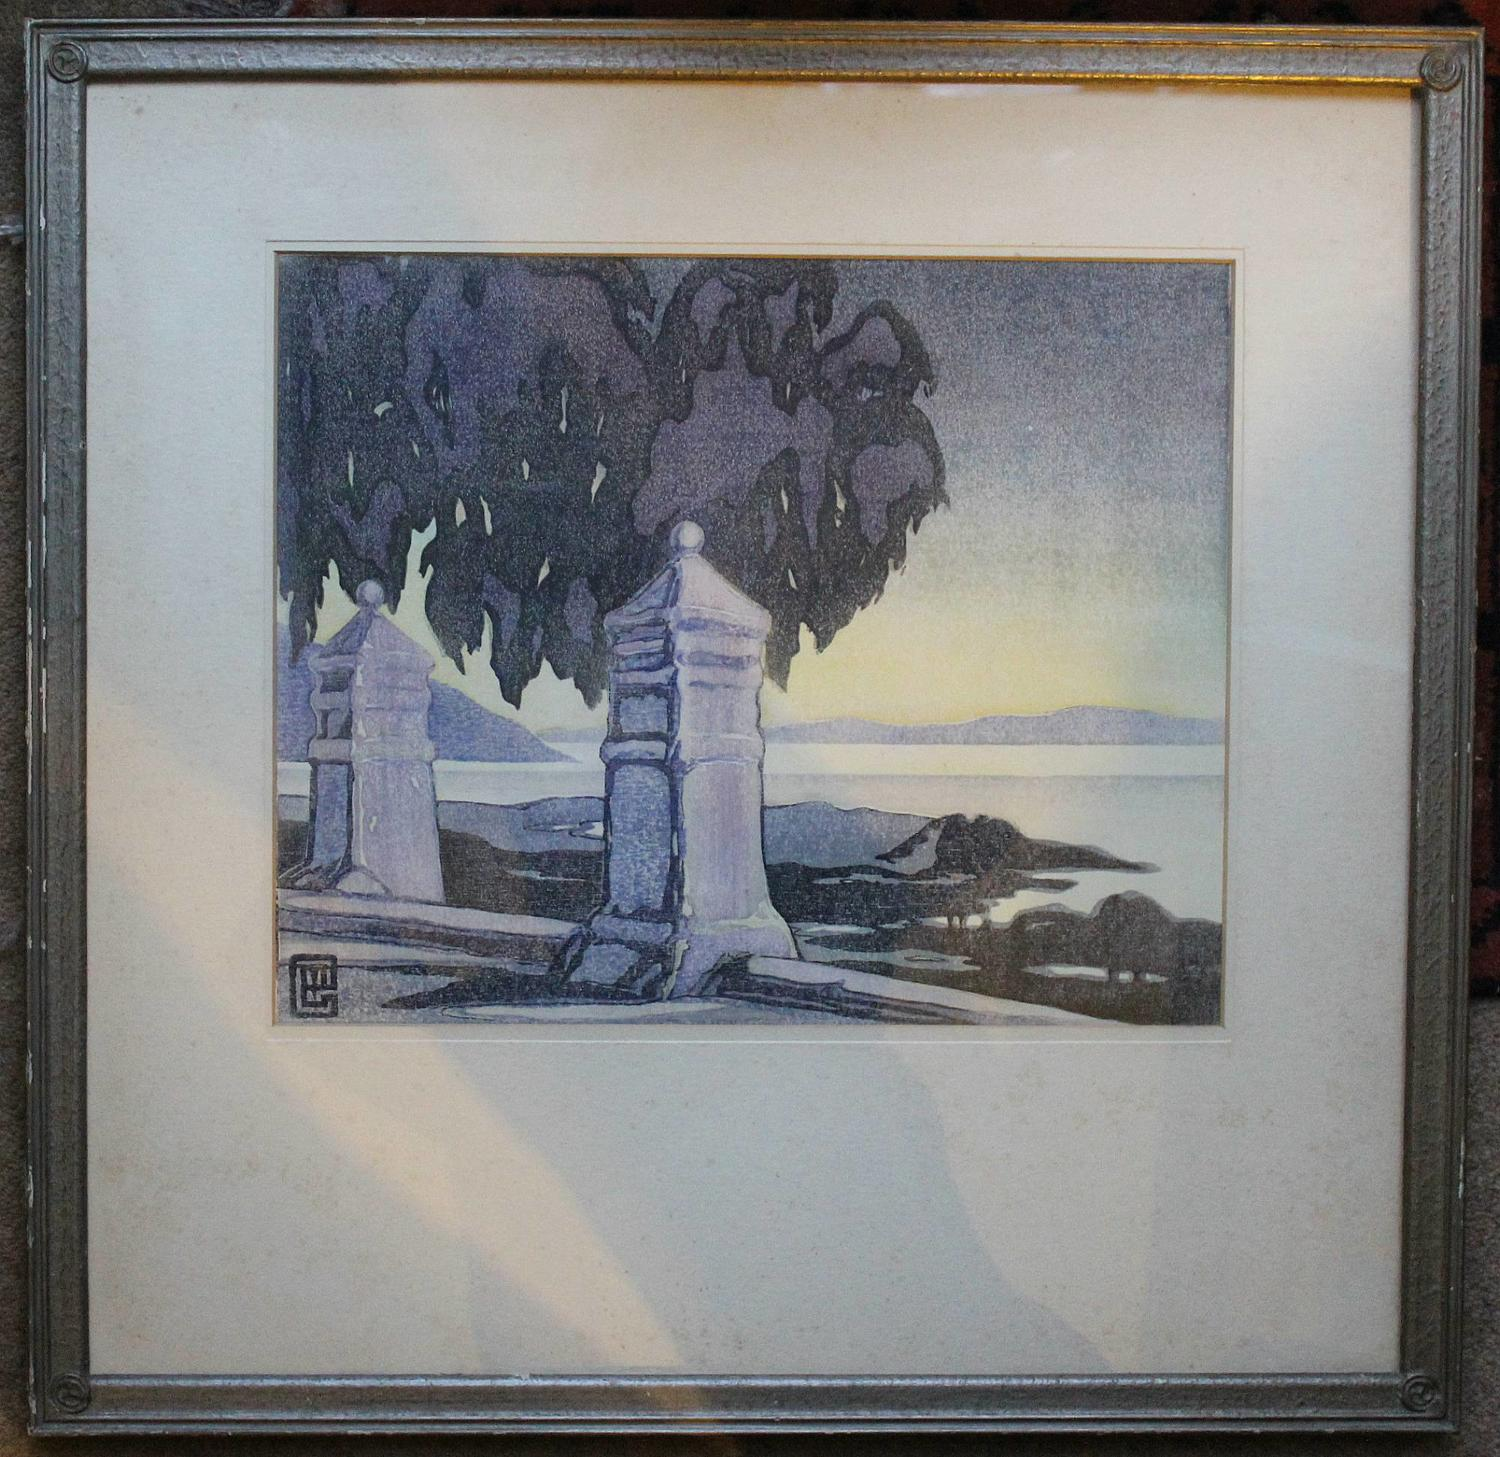 Marion Gill, Cape Sunset, South Africa, Woodblock Print